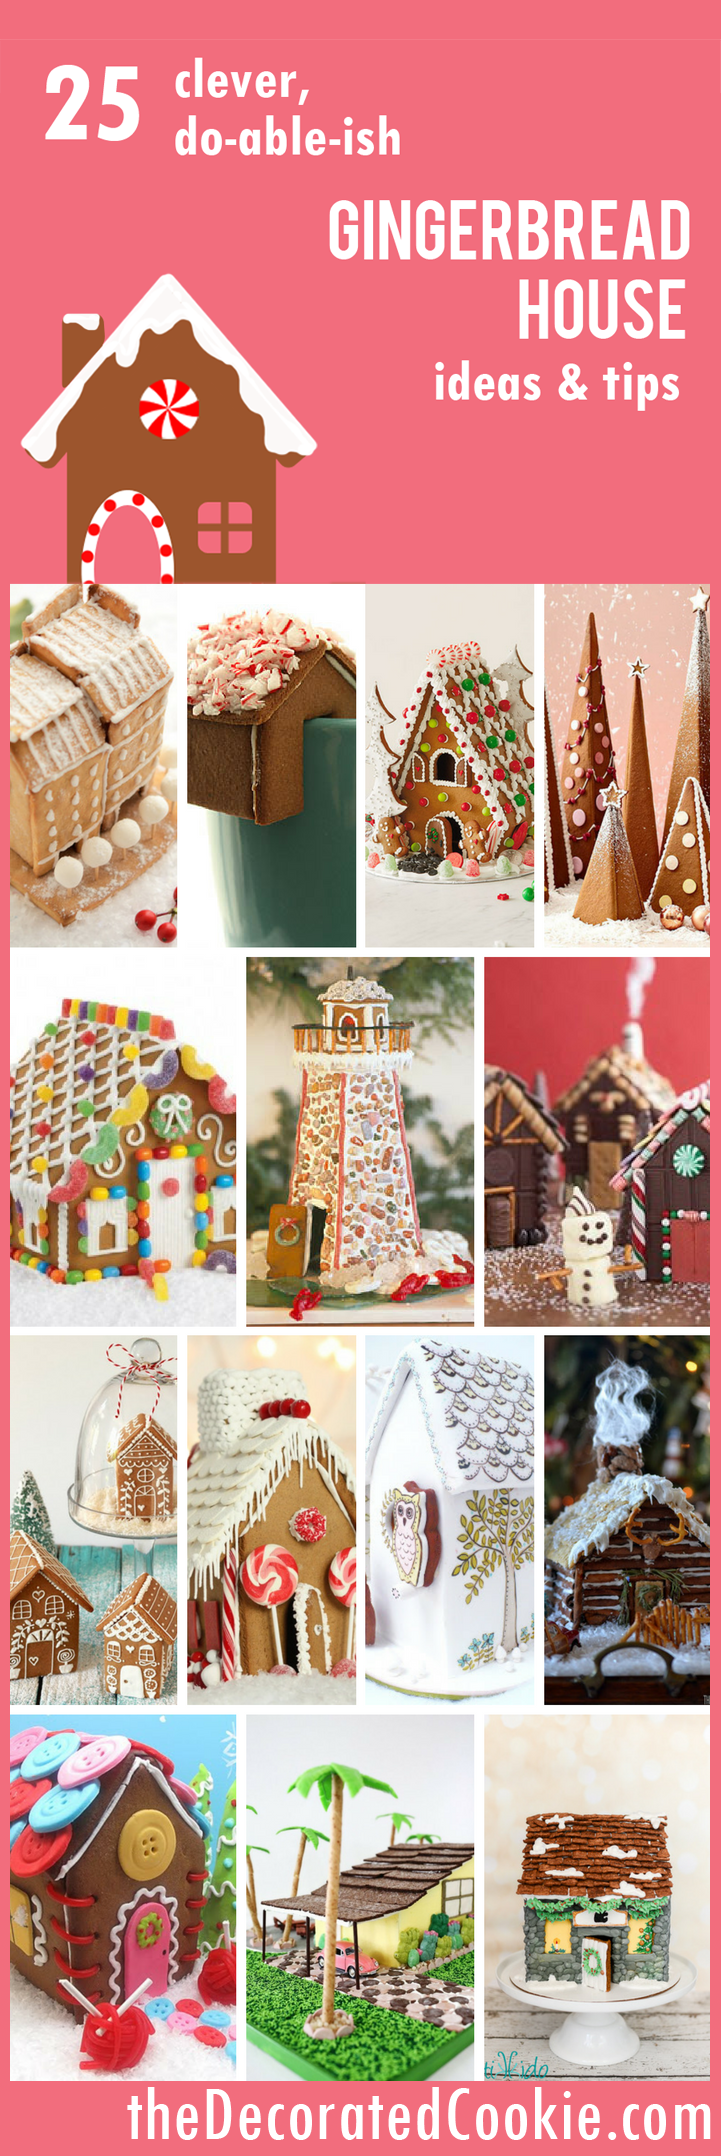 Ideas for a gingerbread house - Gingerbread 25 Gingerbread House Ideas